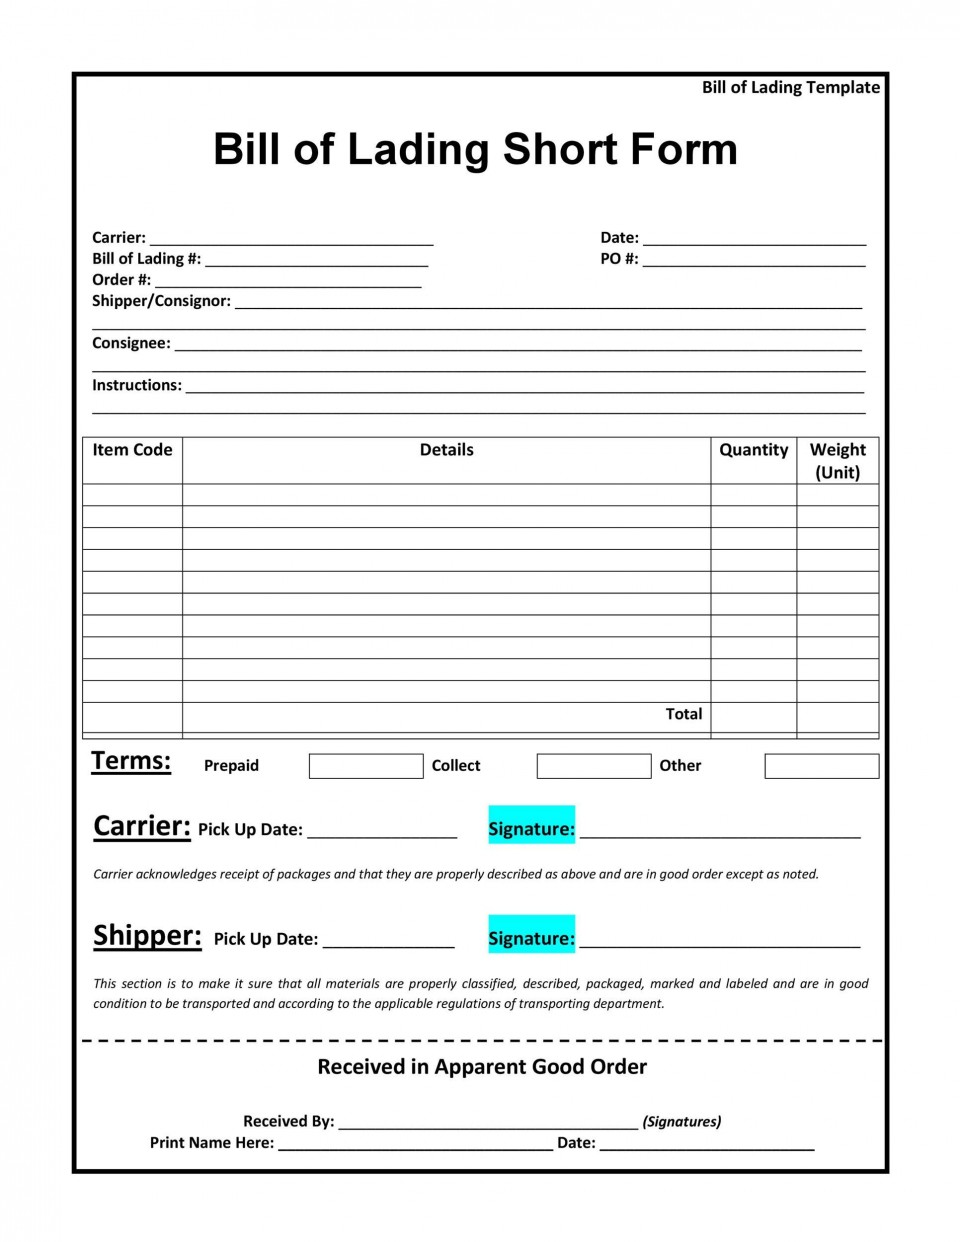 008 Archaicawful Straight Bill Of Lading Template Concept  Form Pdf Word Short960